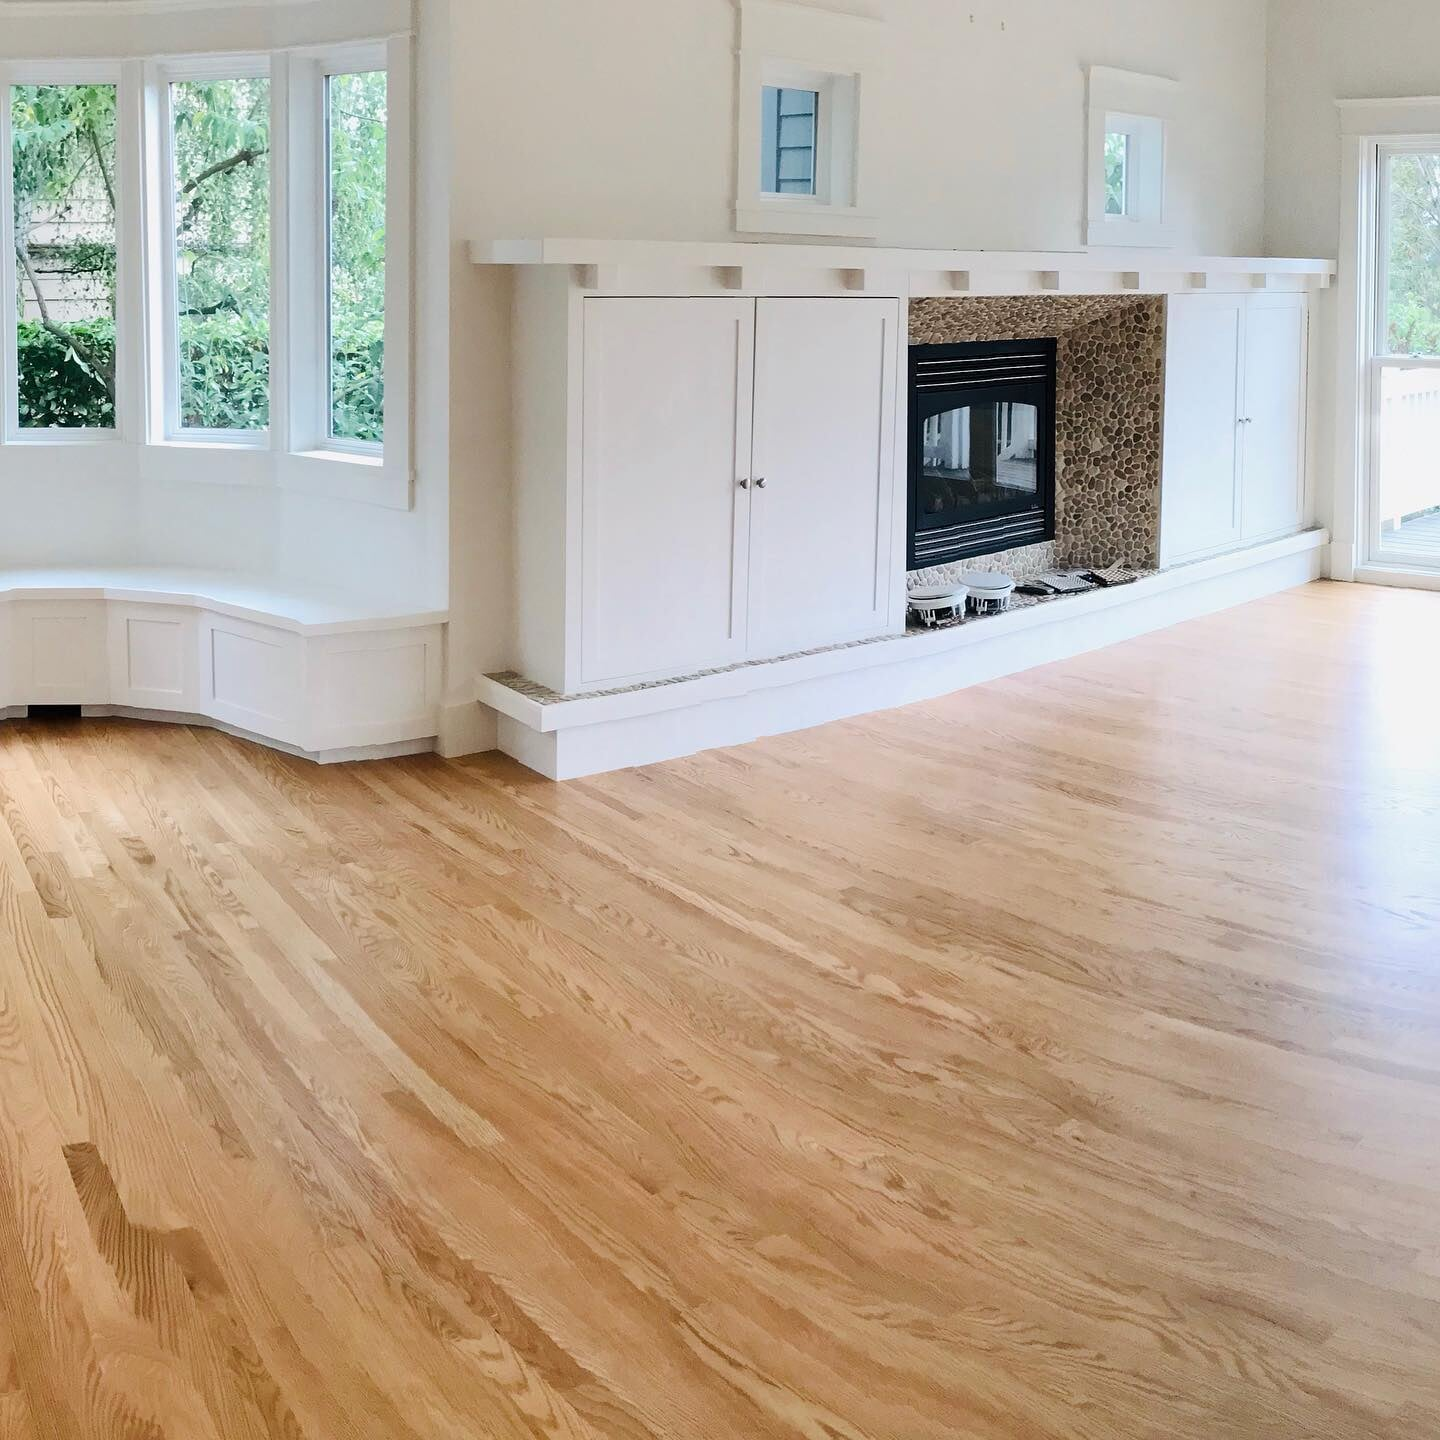 Hardwood flooring from LeBlanc Floors & Interiors in Redmond, WA